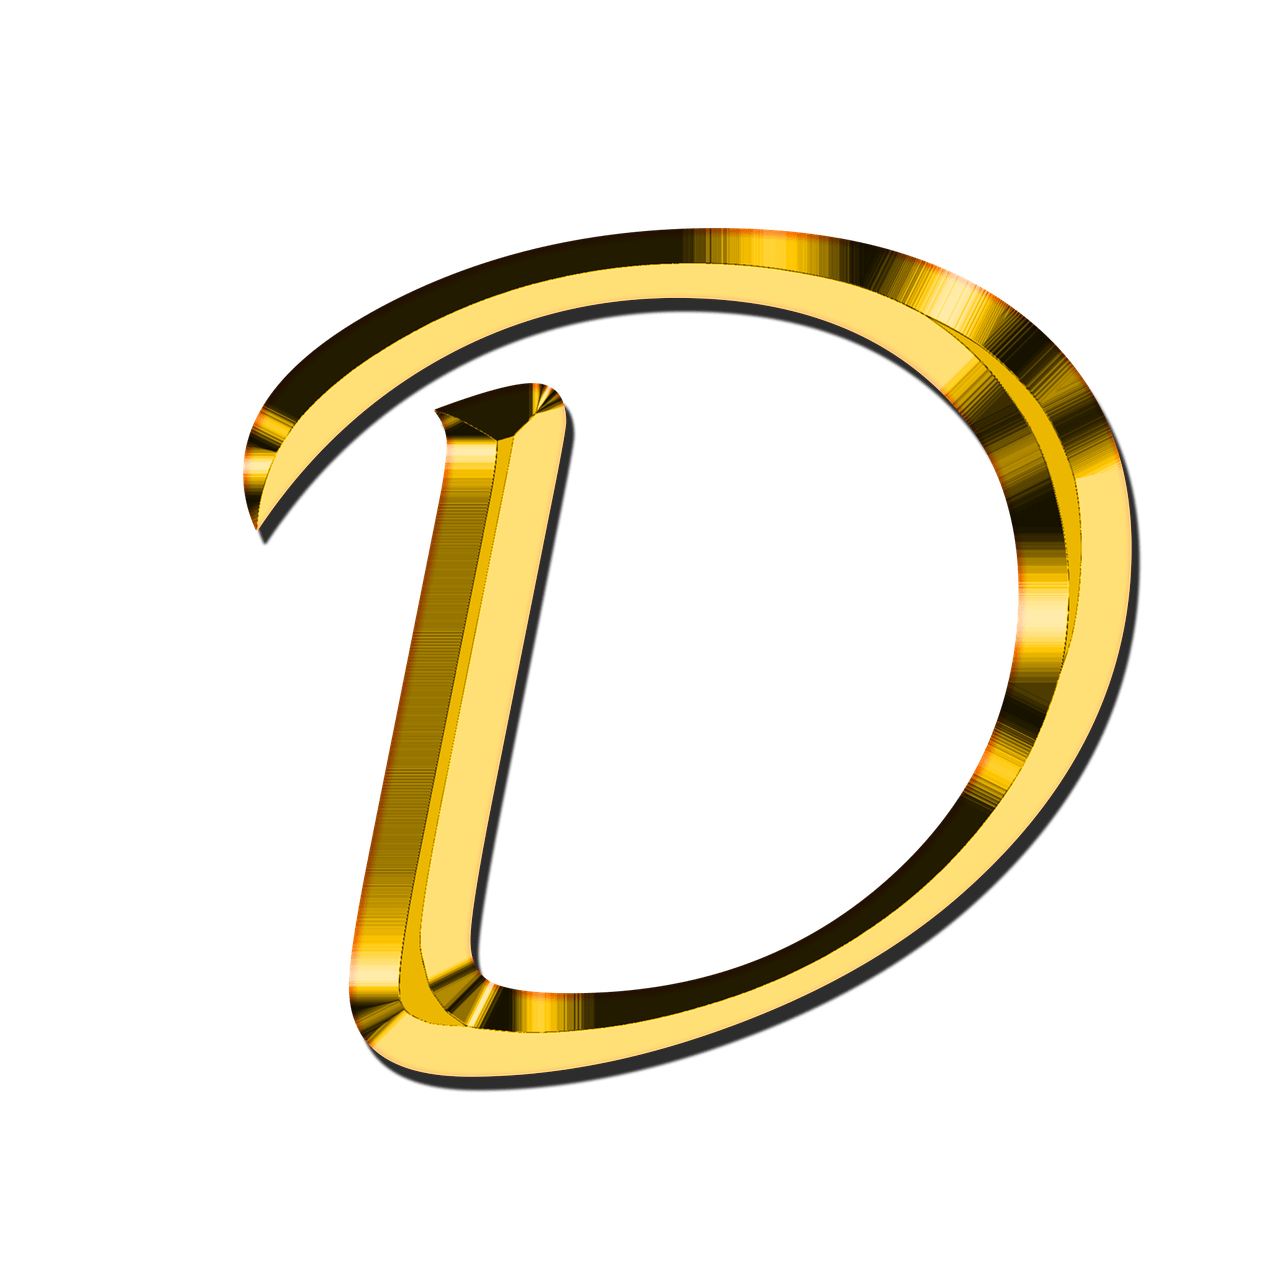 D transparent. Capital letter png stickpng